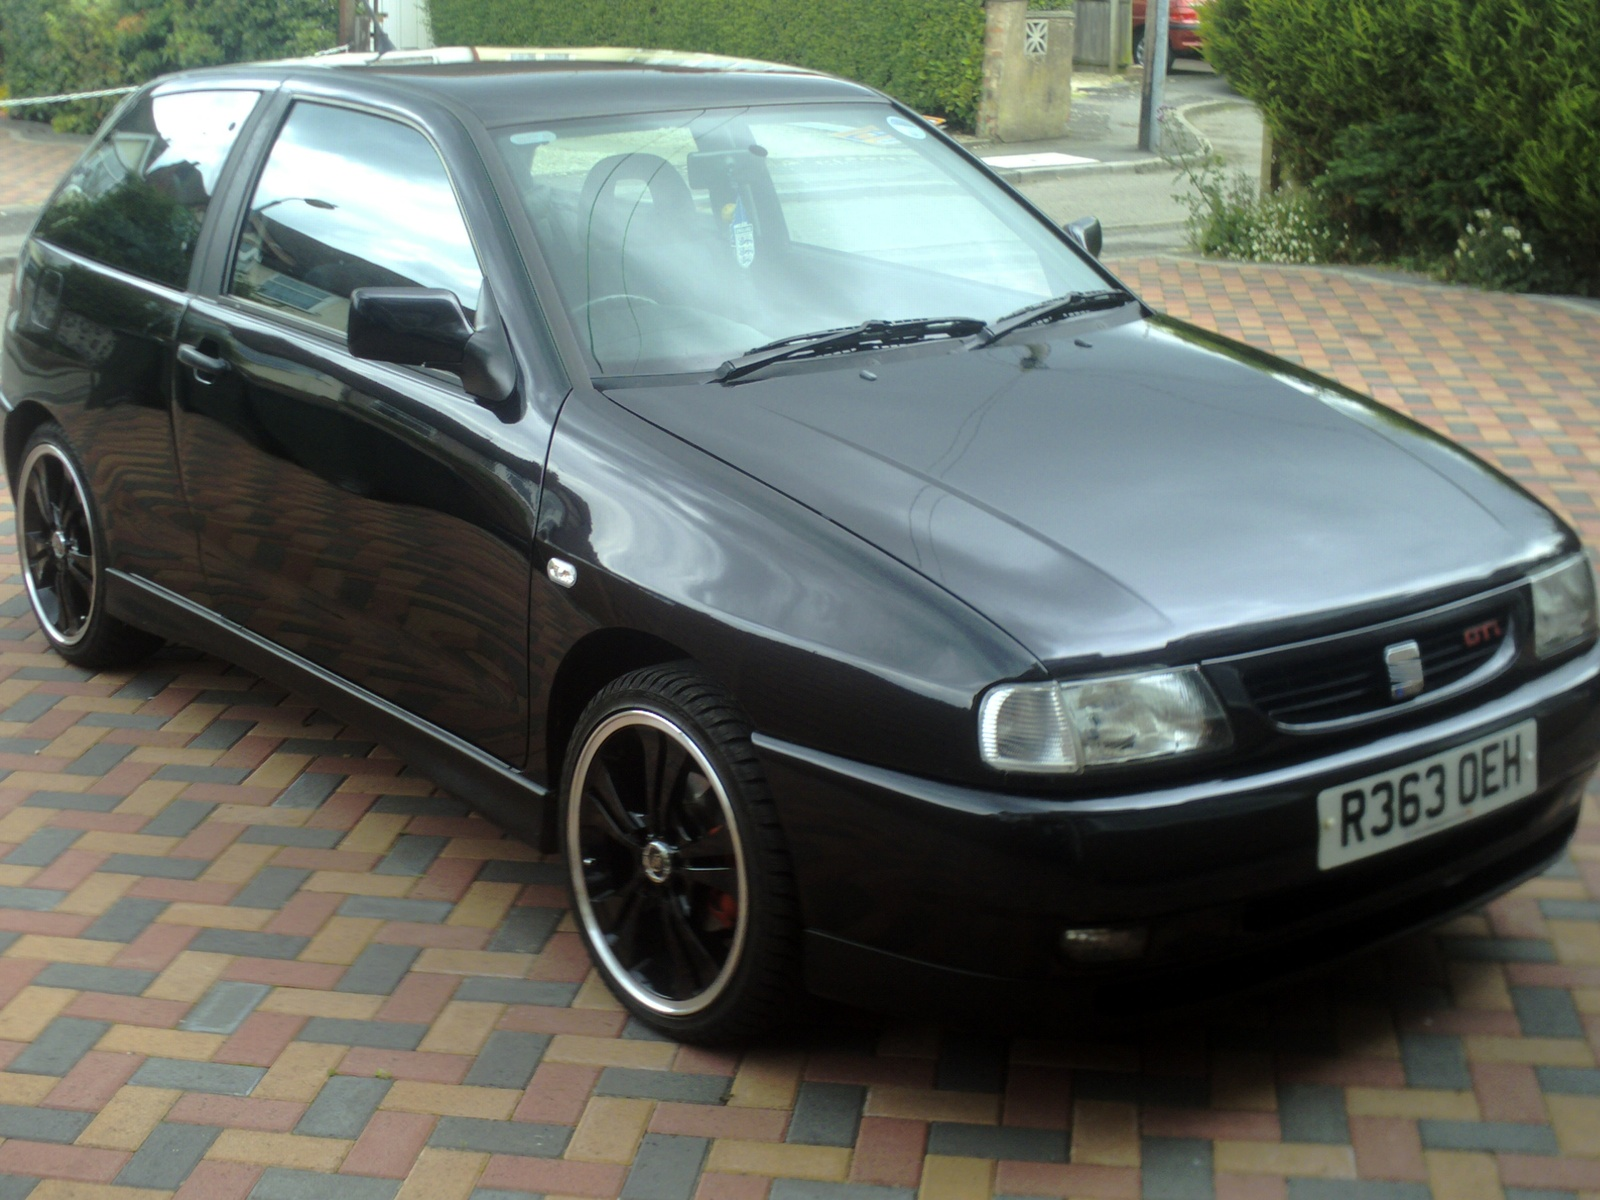 seat ibiza 1 9 1998 technical specifications interior and exterior photo. Black Bedroom Furniture Sets. Home Design Ideas